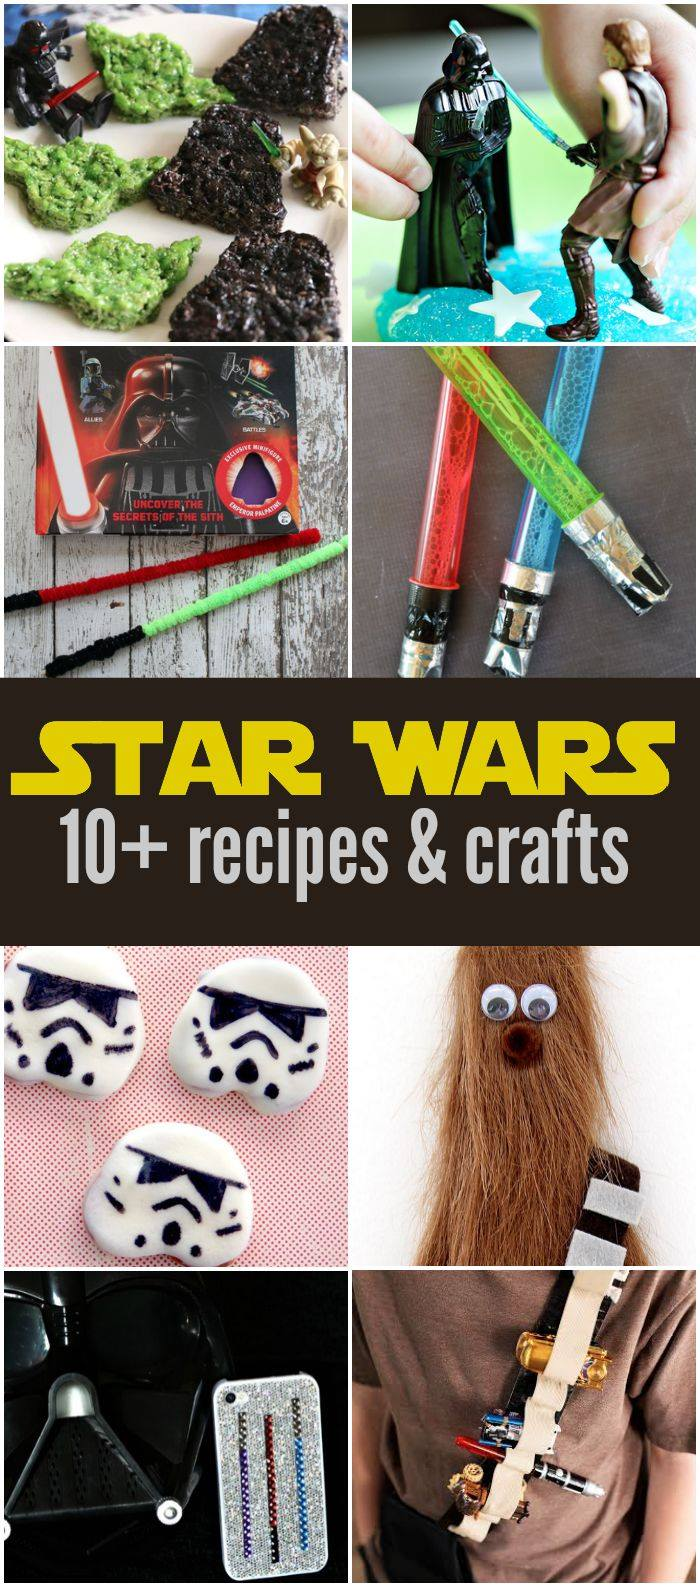 Star Wars #ForceFriday projects